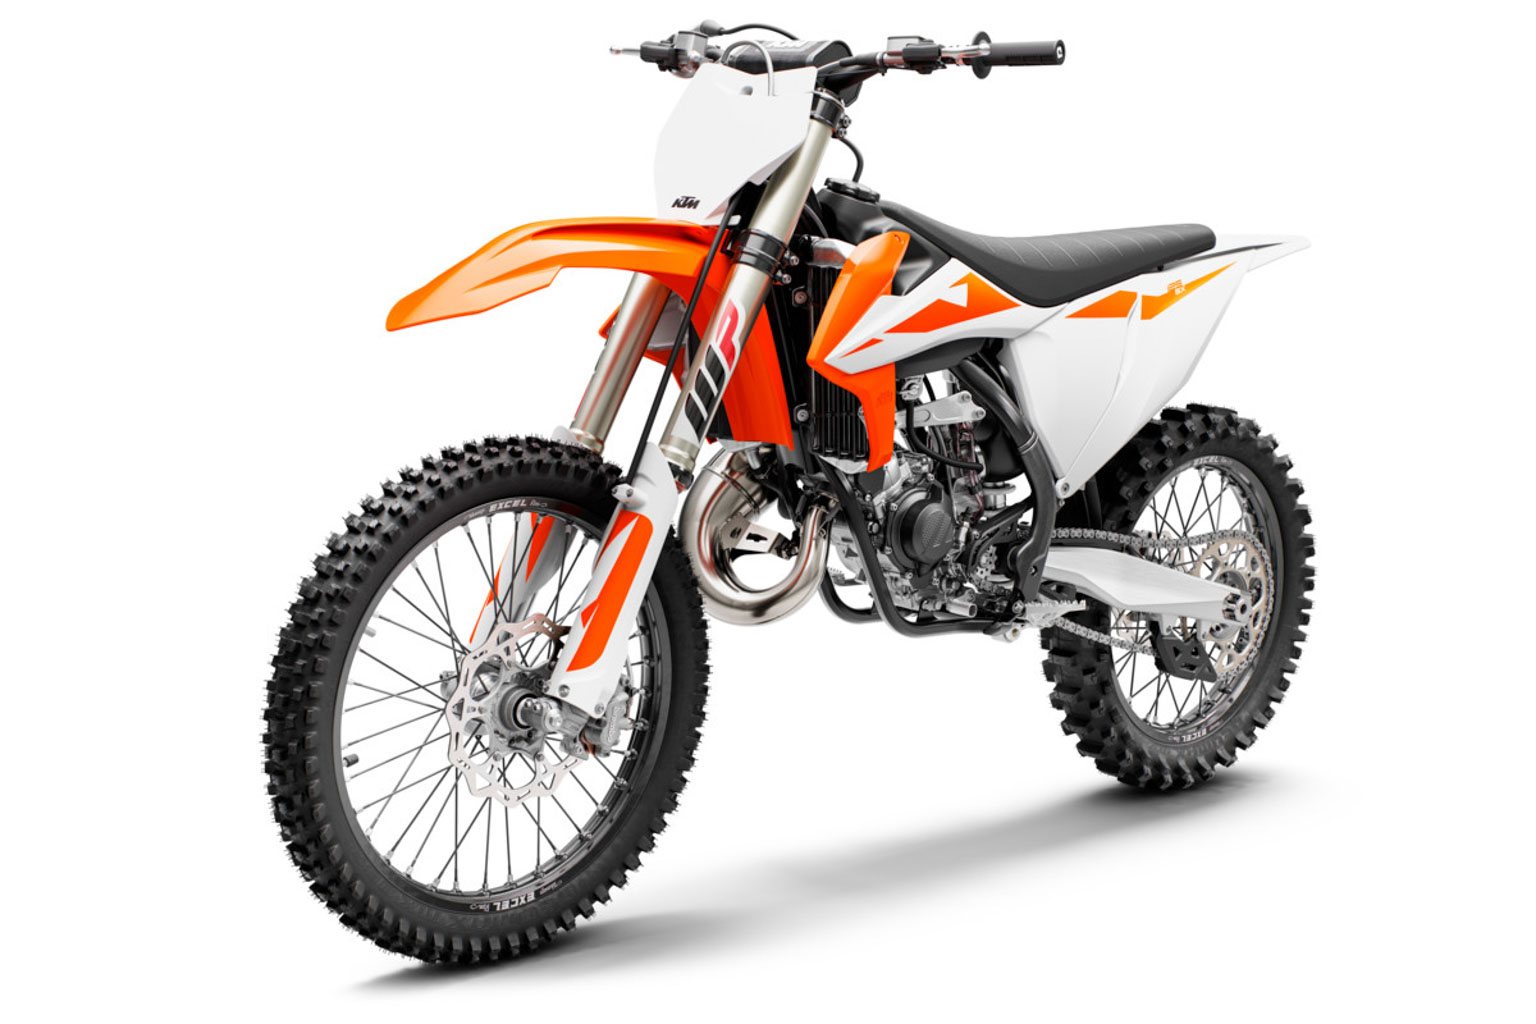 Whats new on ktms 2019 two strokes motohead whats new on ktms 2019 two strokes ccuart Image collections